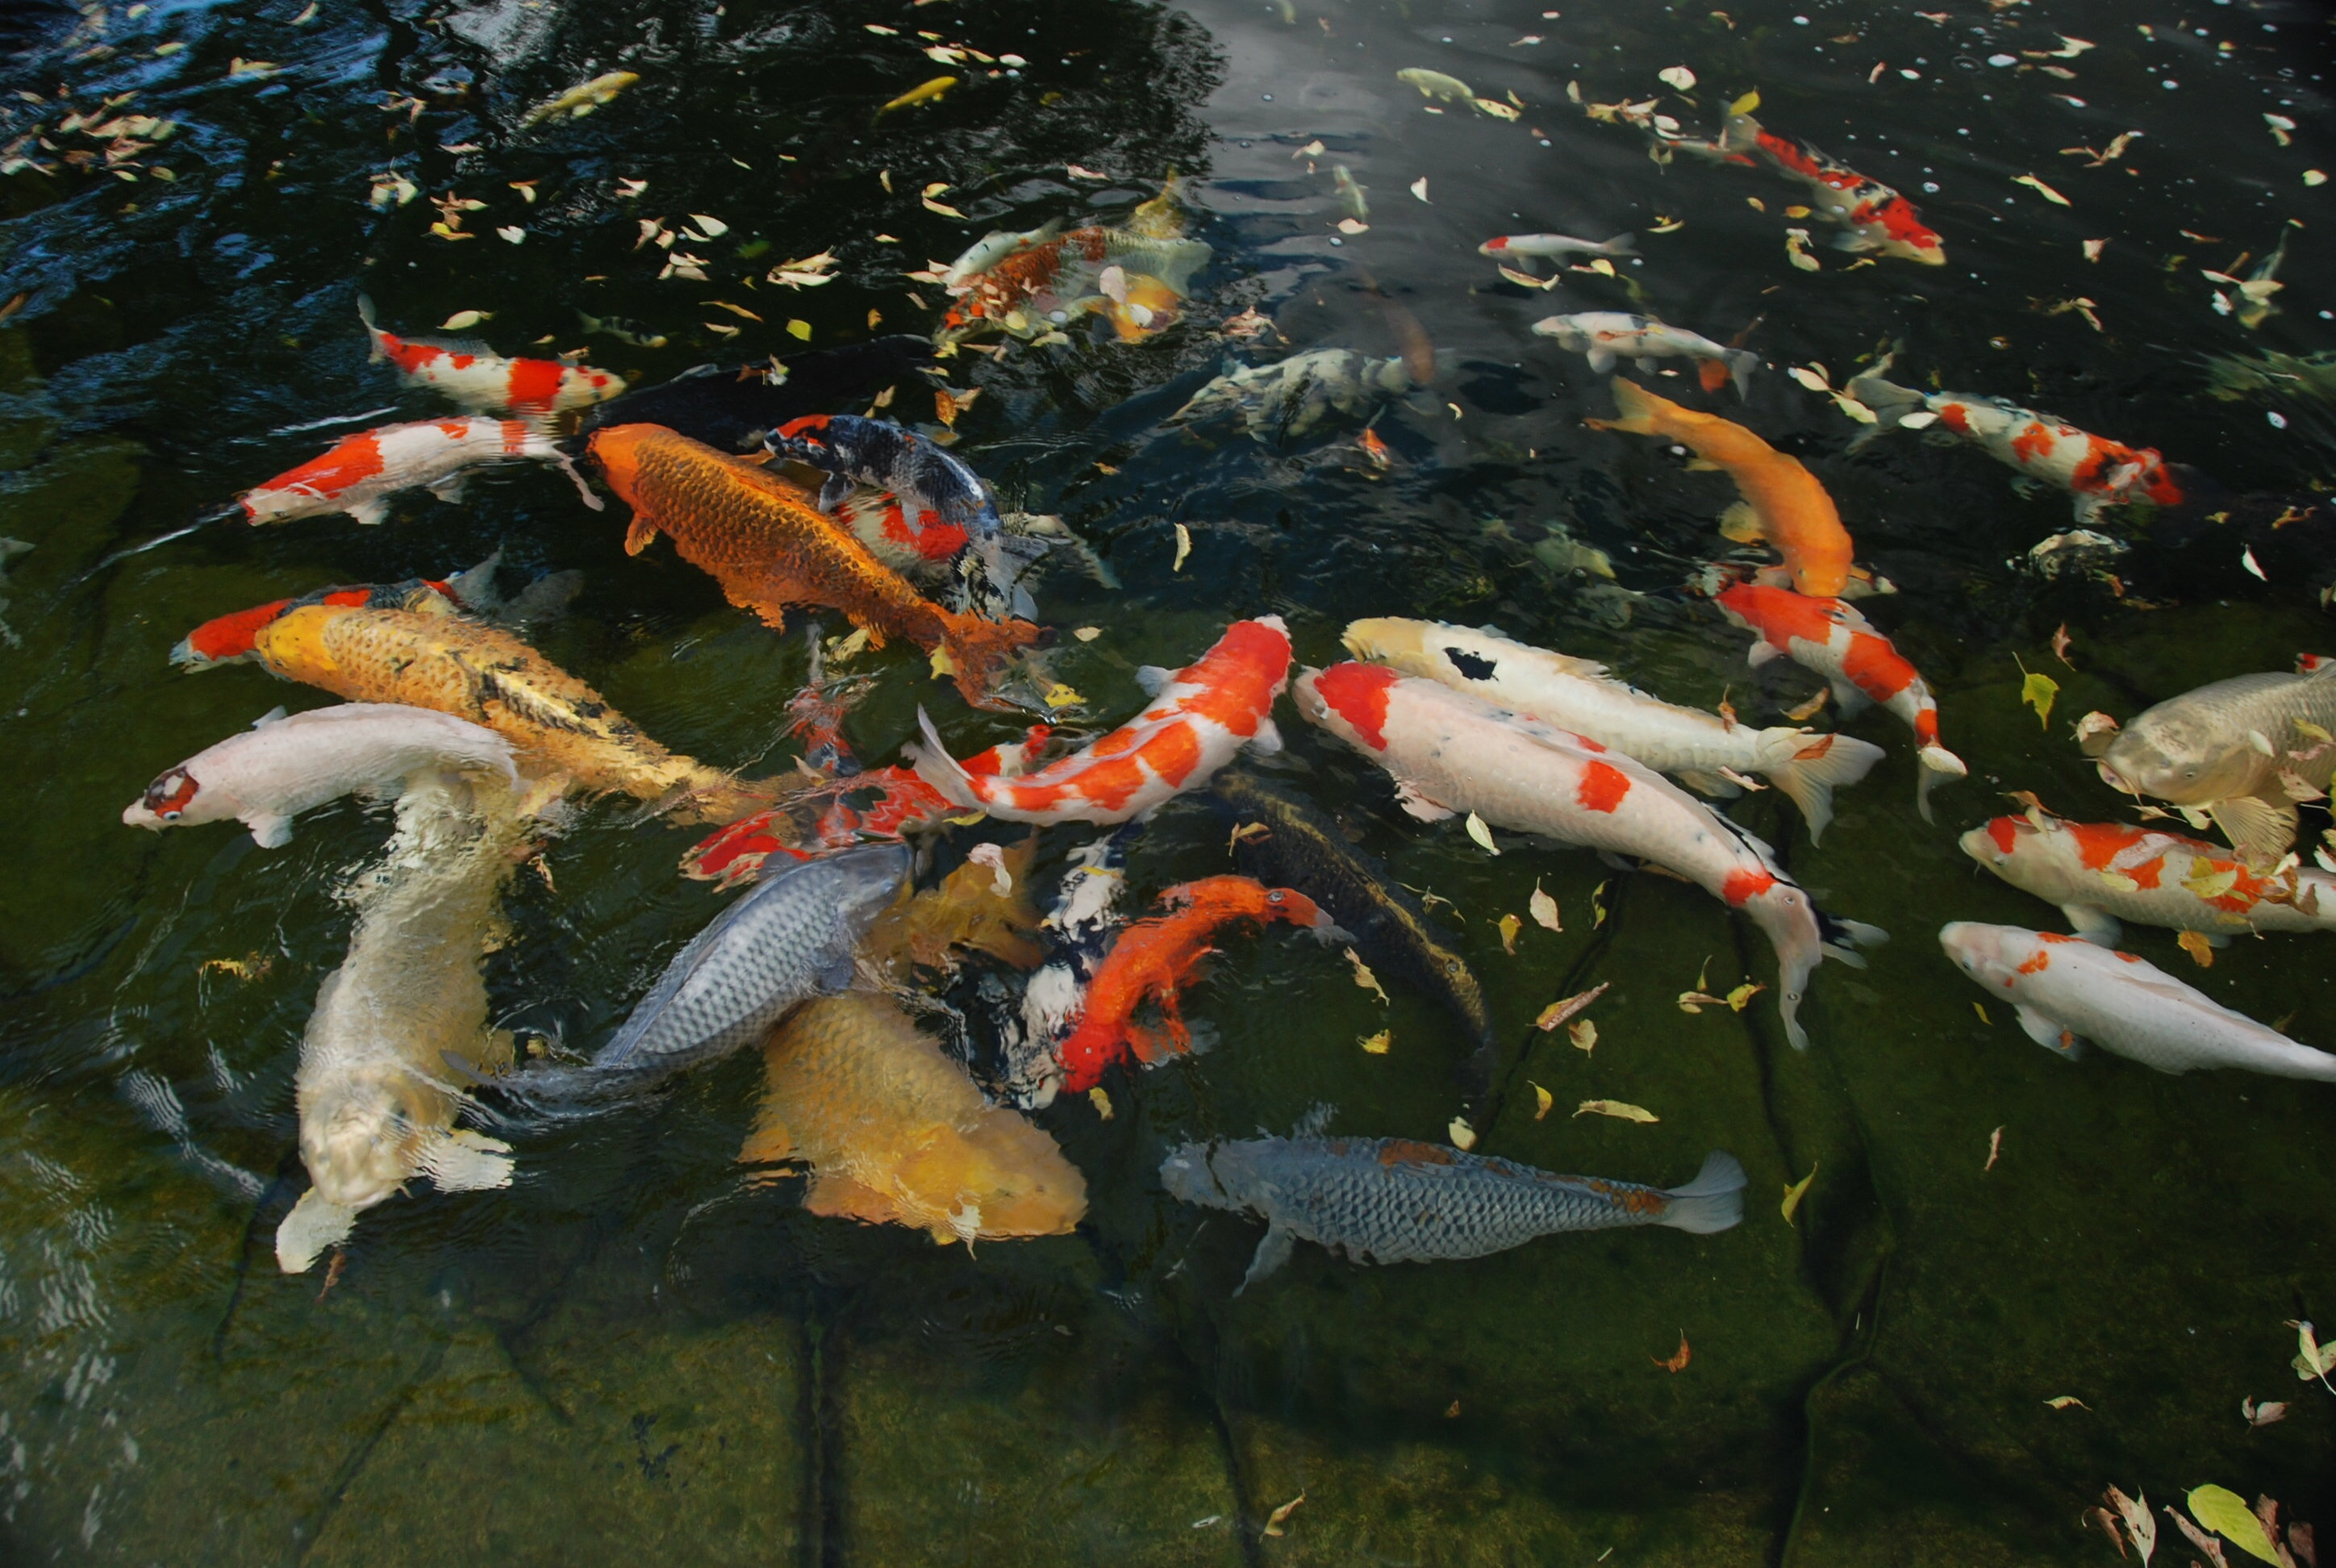 Carpe ko poissons anipassion for Poisson koi aquarium